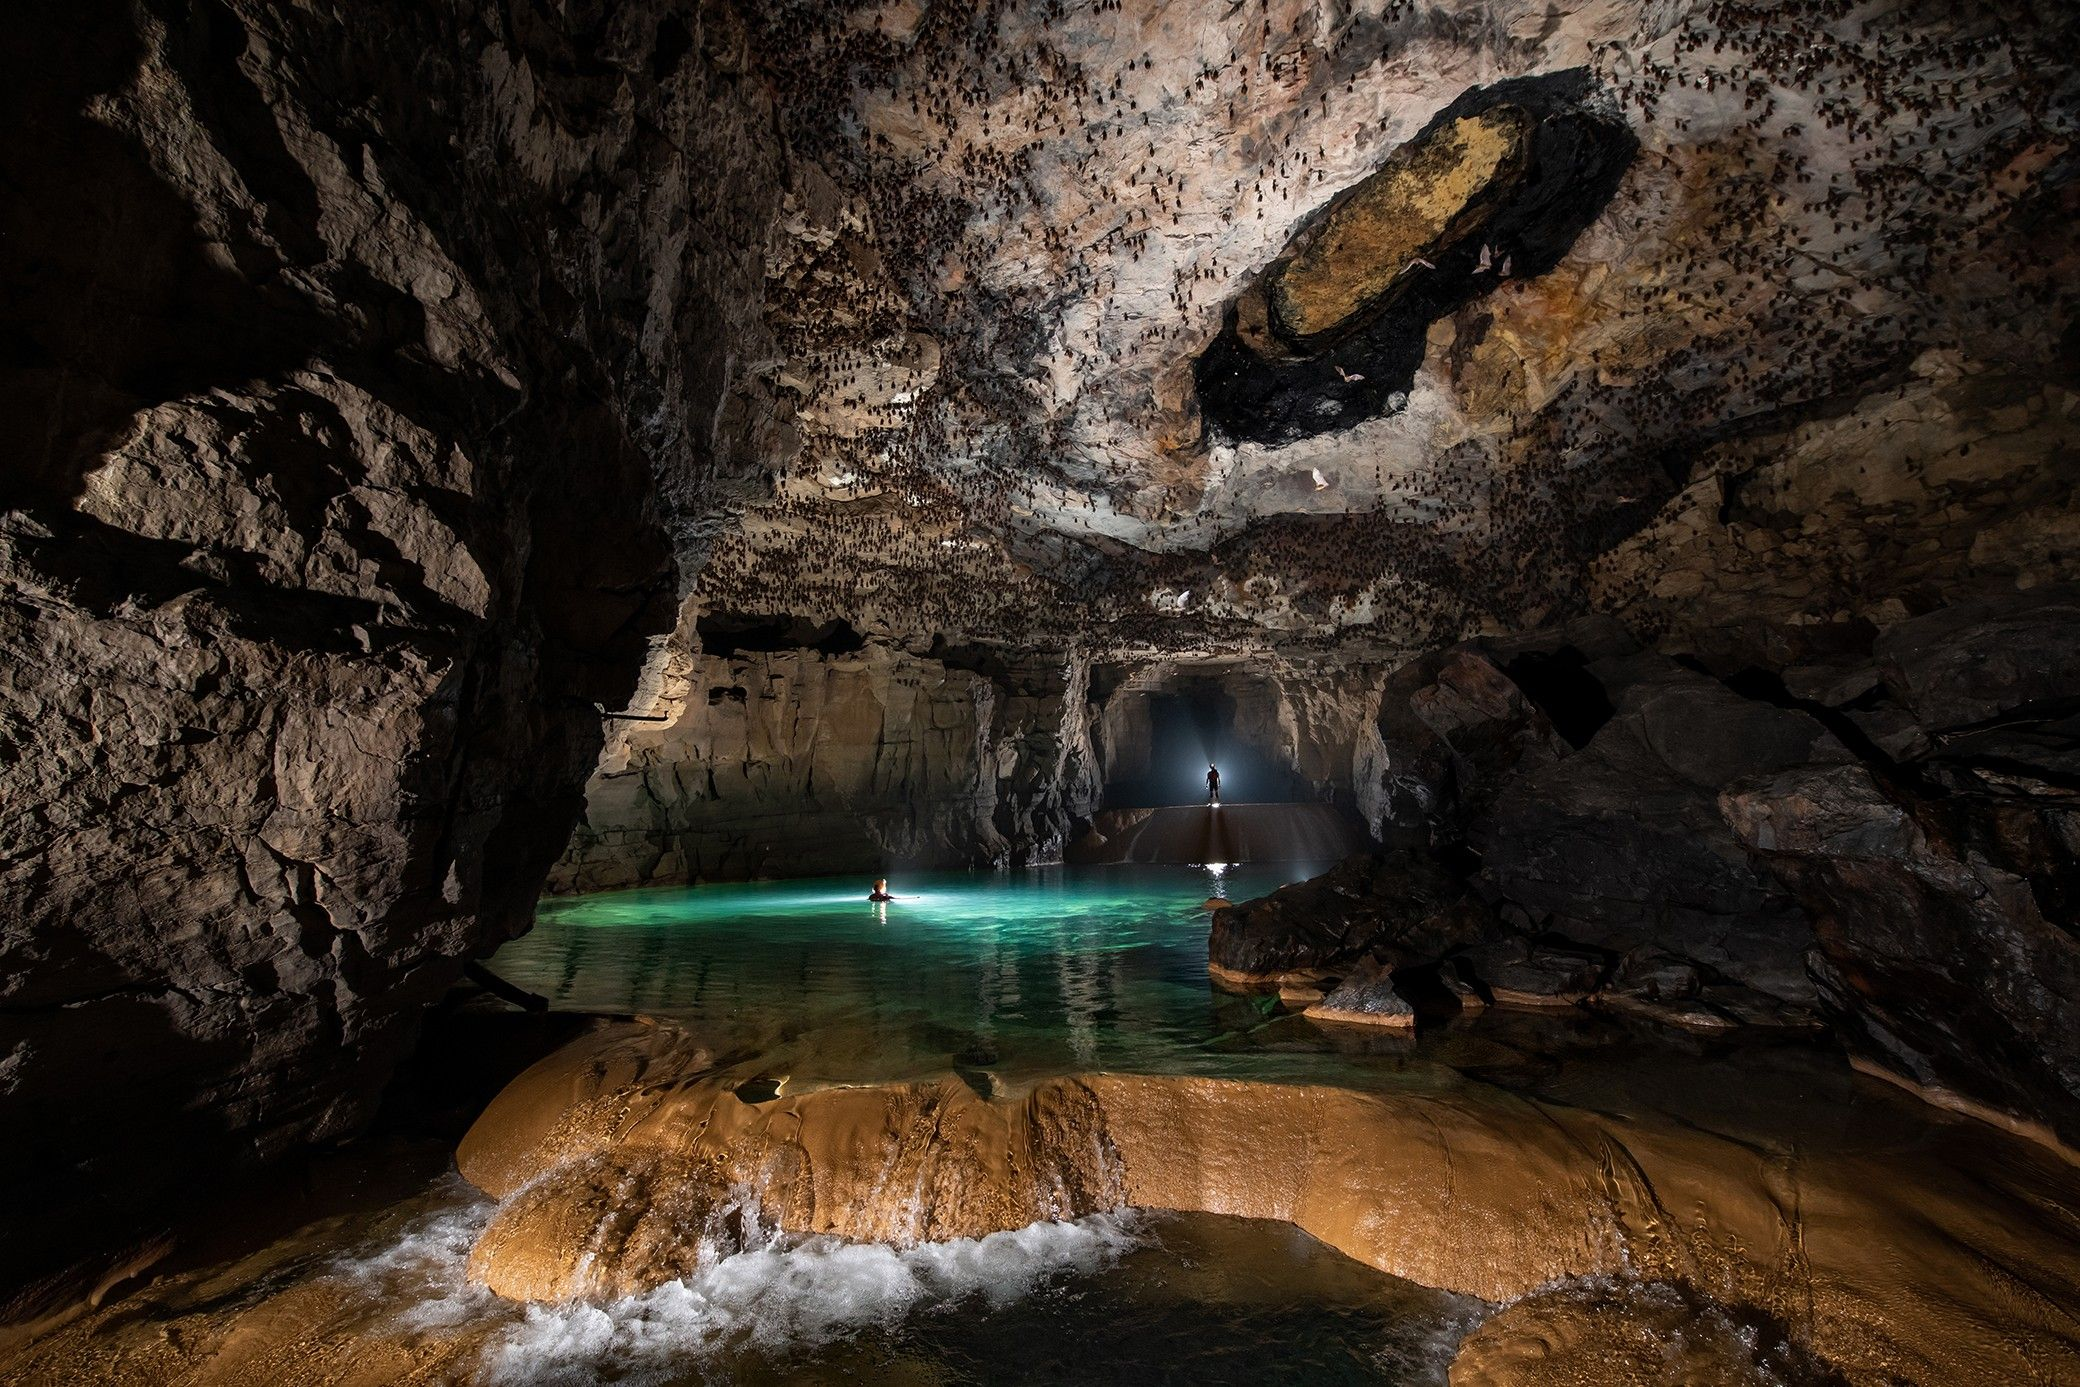 World's largest cave fish discovered in India